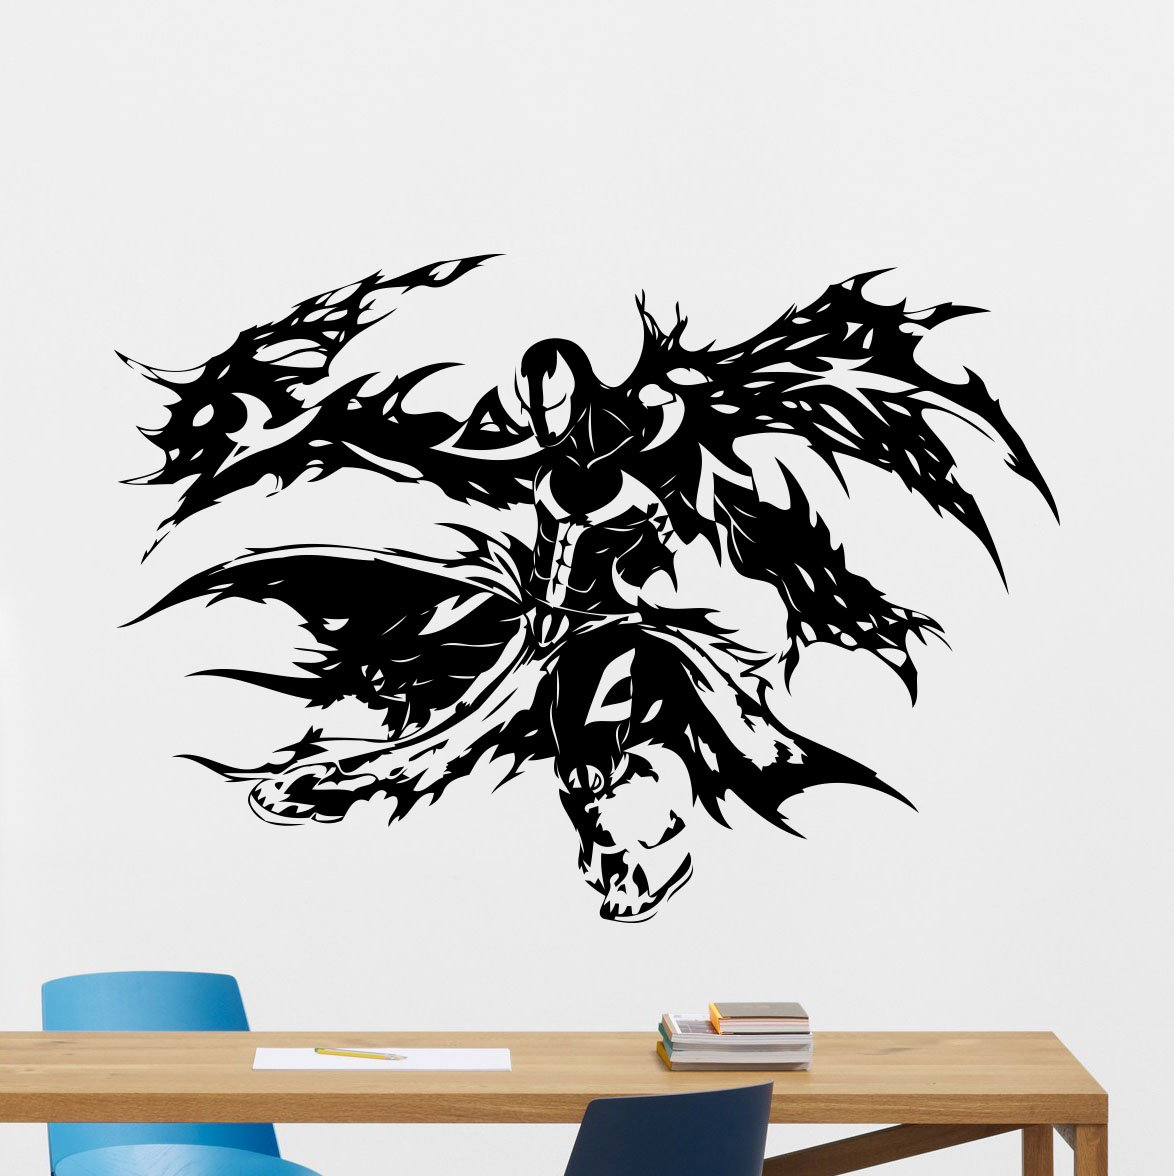 amazon com spawn wall vinyl decal marvel comics superhero wall amazon com spawn wall vinyl decal marvel comics superhero wall sticker video game gaming wall decor cool wall art kids teen room wall design modern bedroom